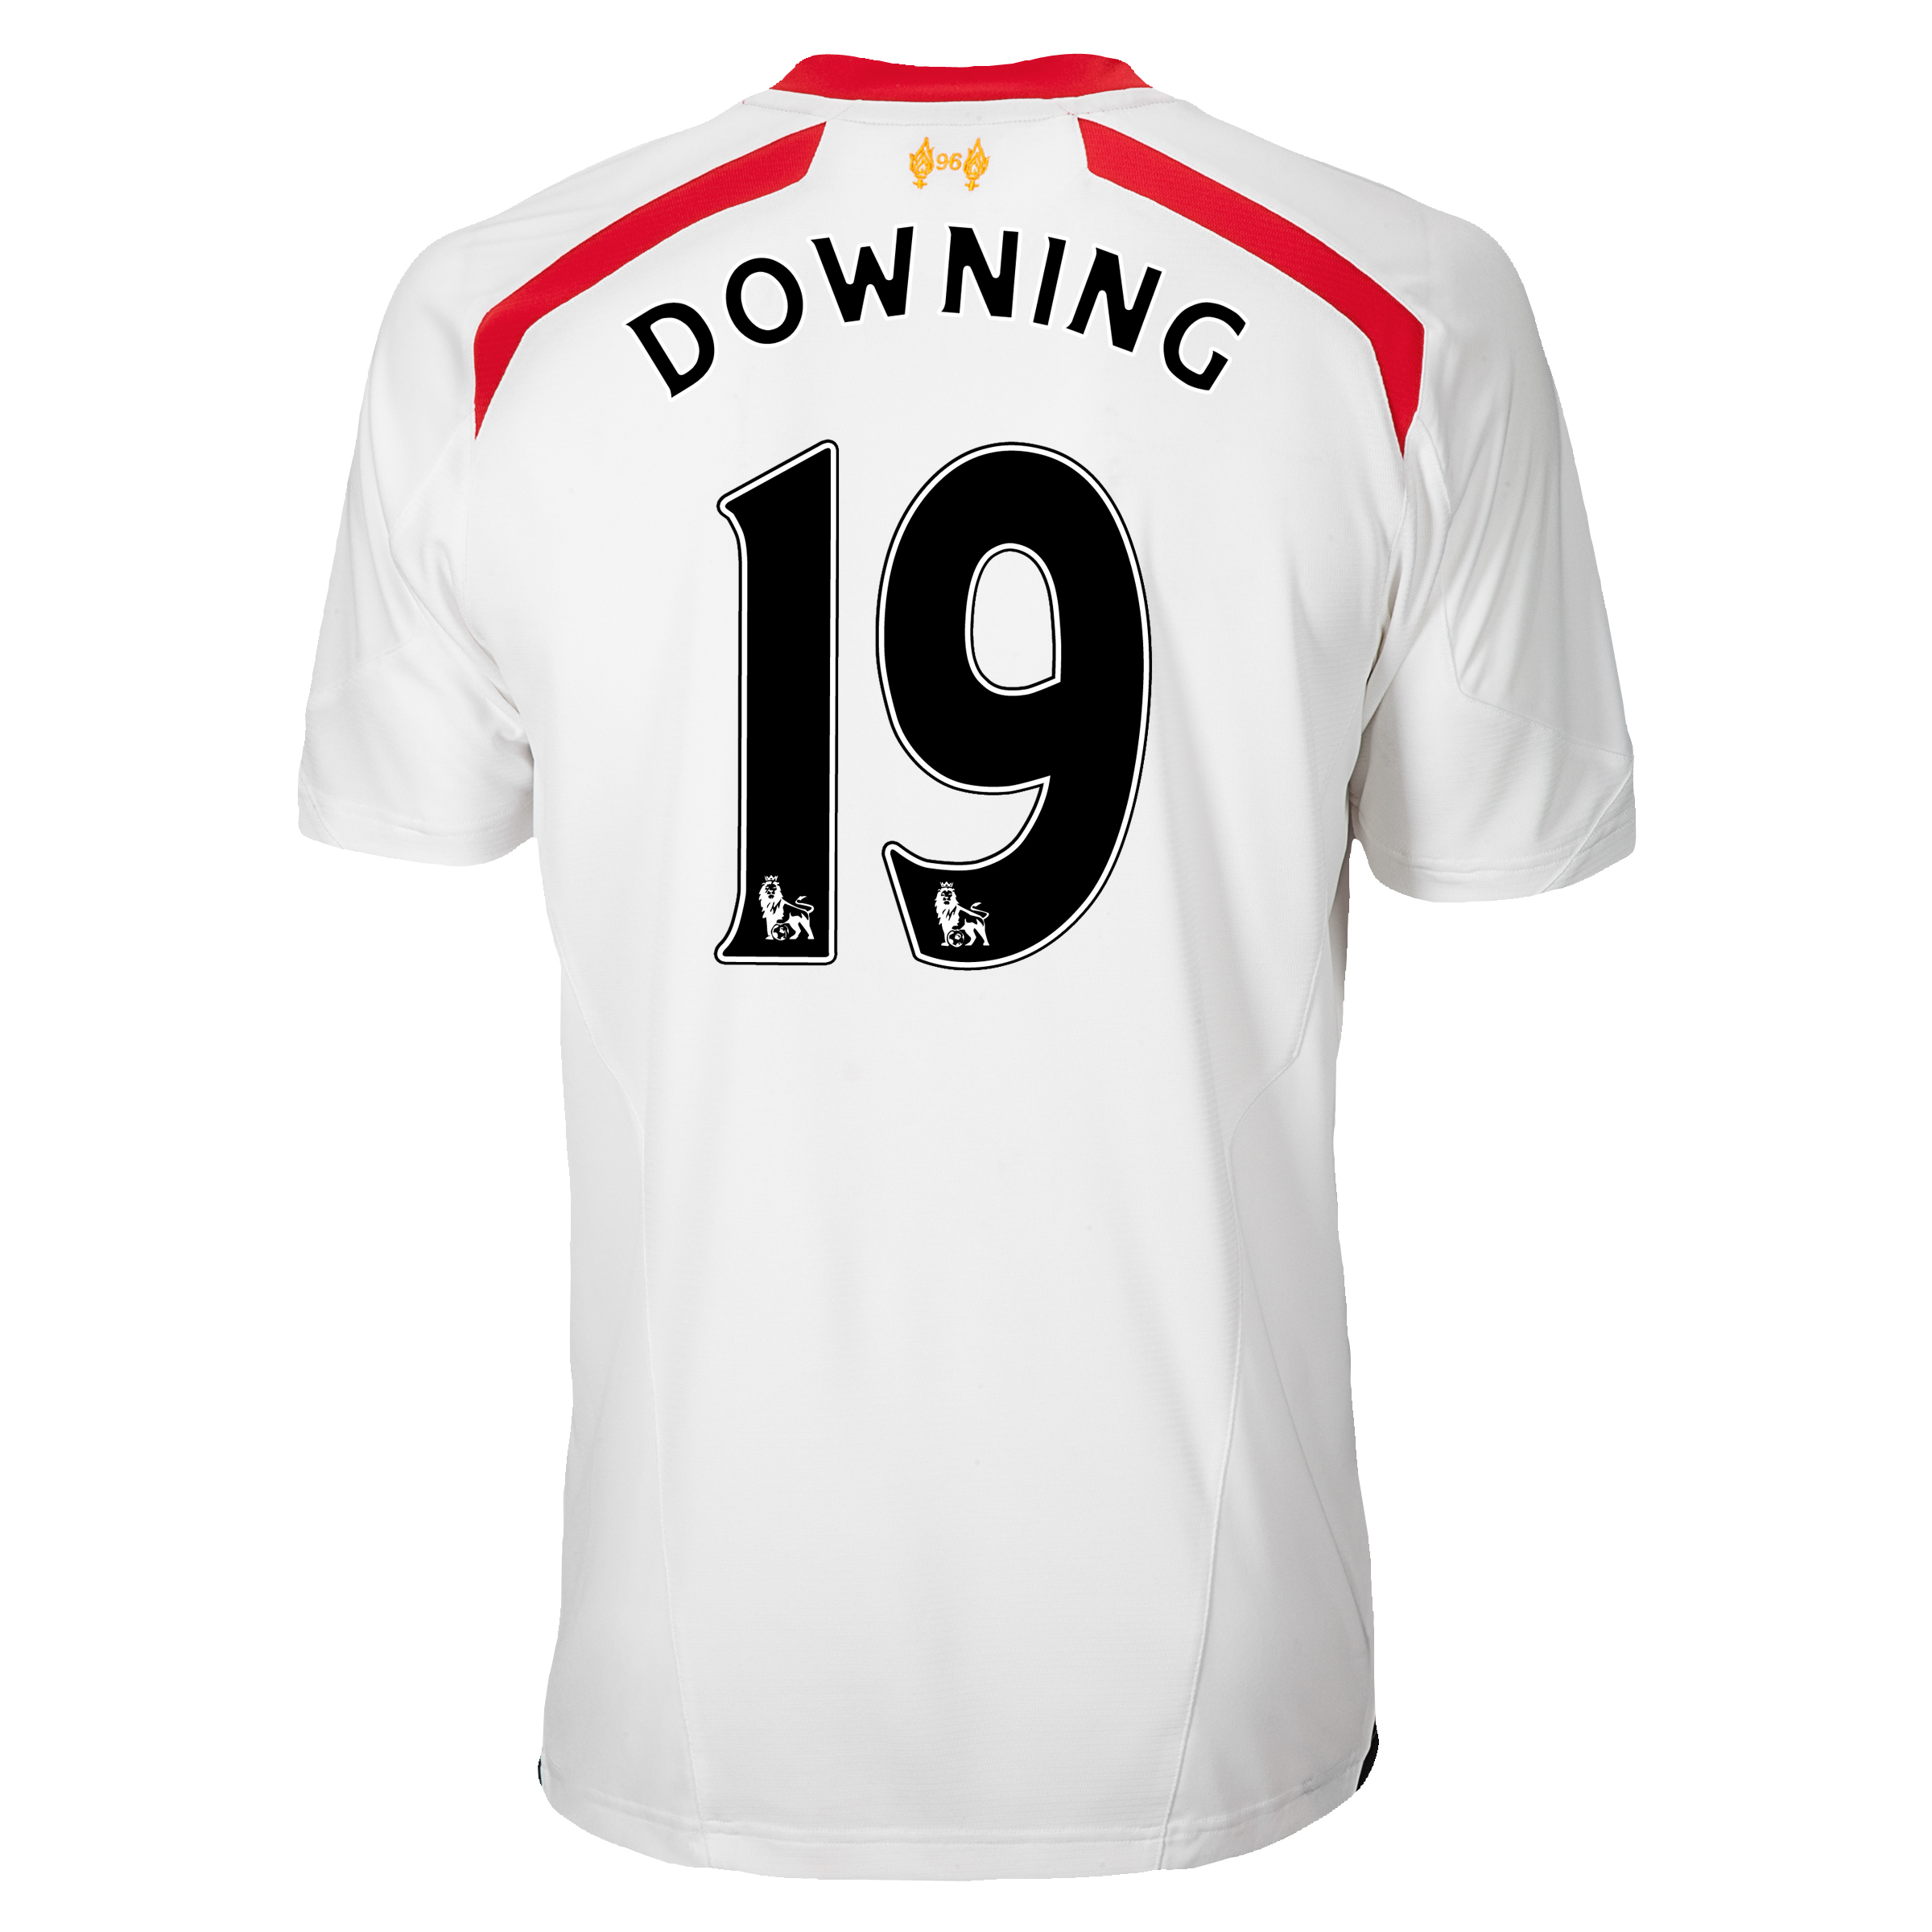 Liverpool Away Shirt 2013/14 with Downing 19 printing